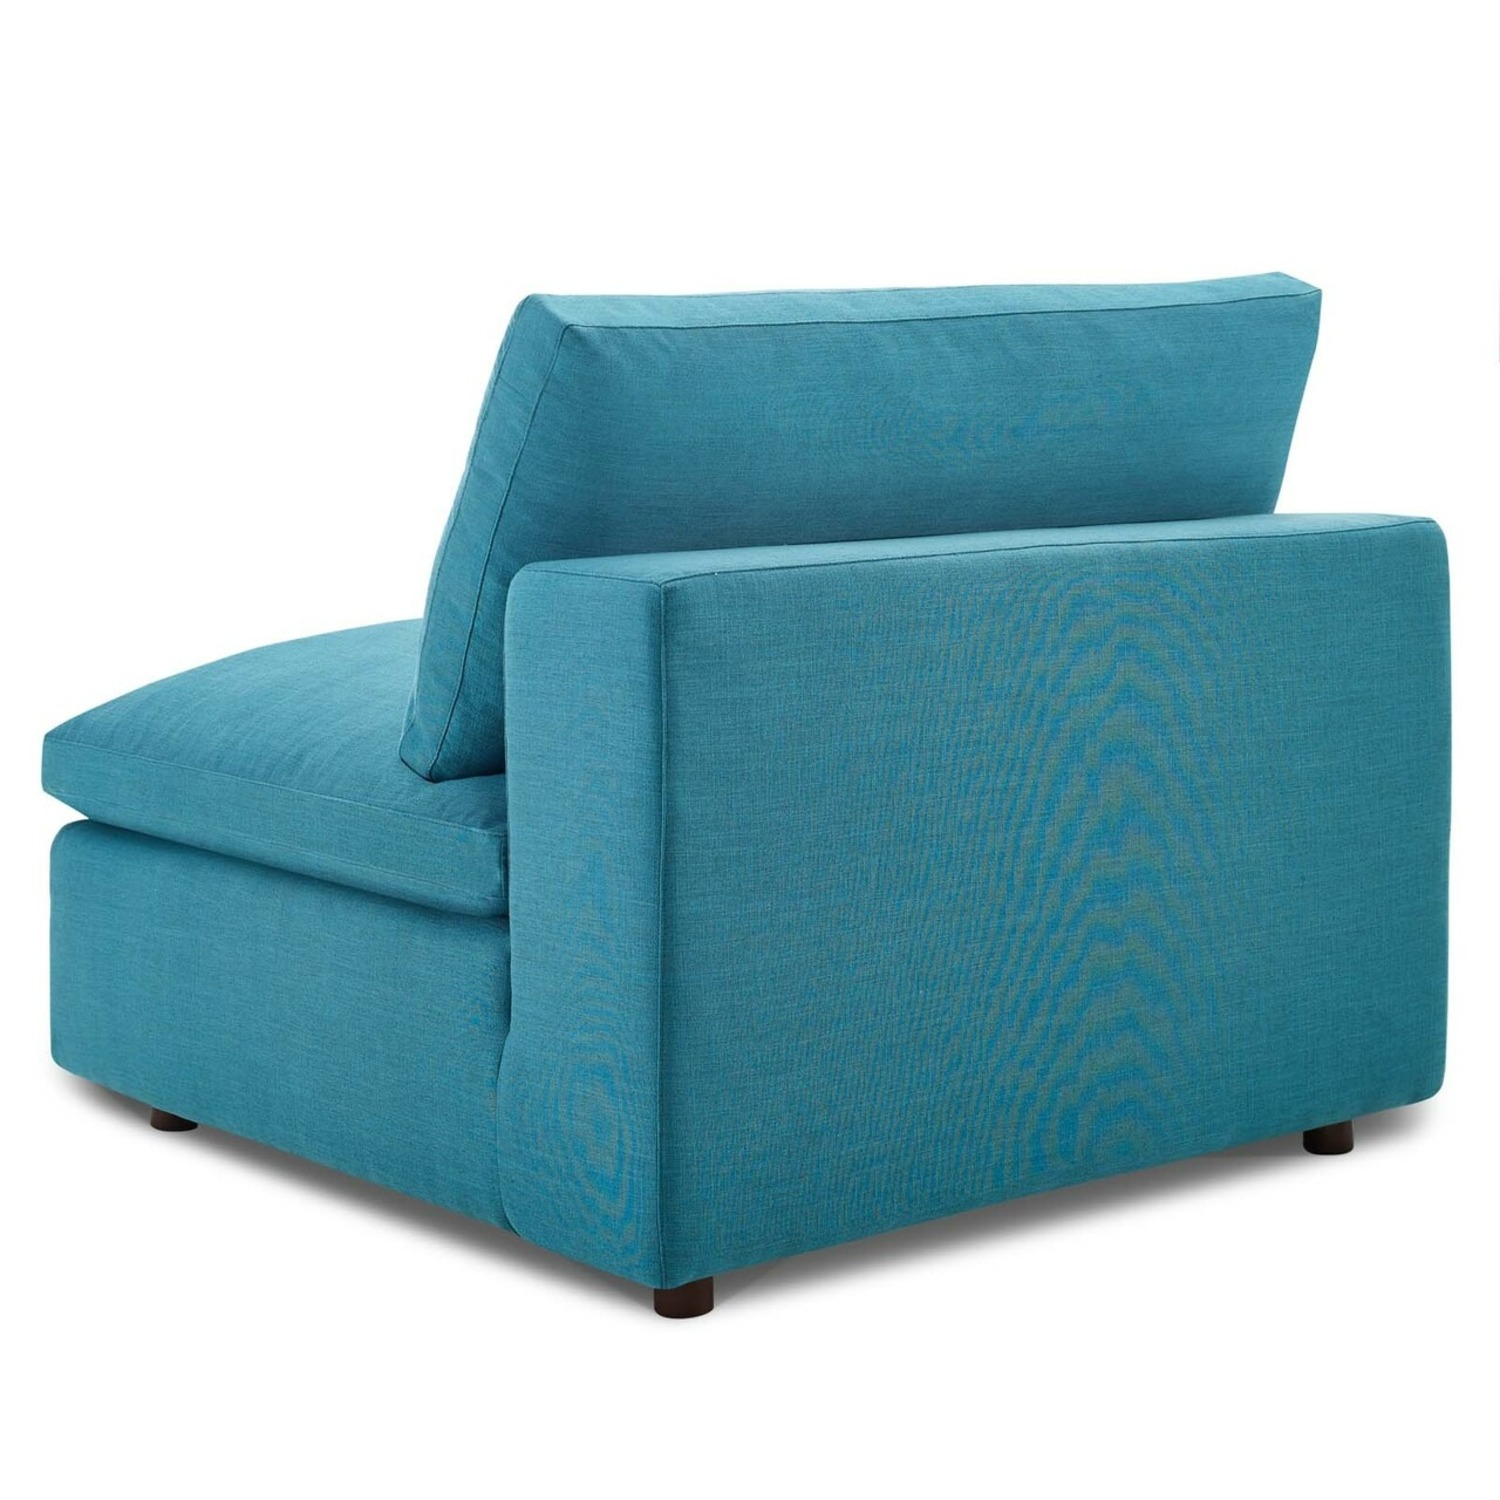 4-Piece Sectional In Teal Polyester & Linen Fabric - image-4